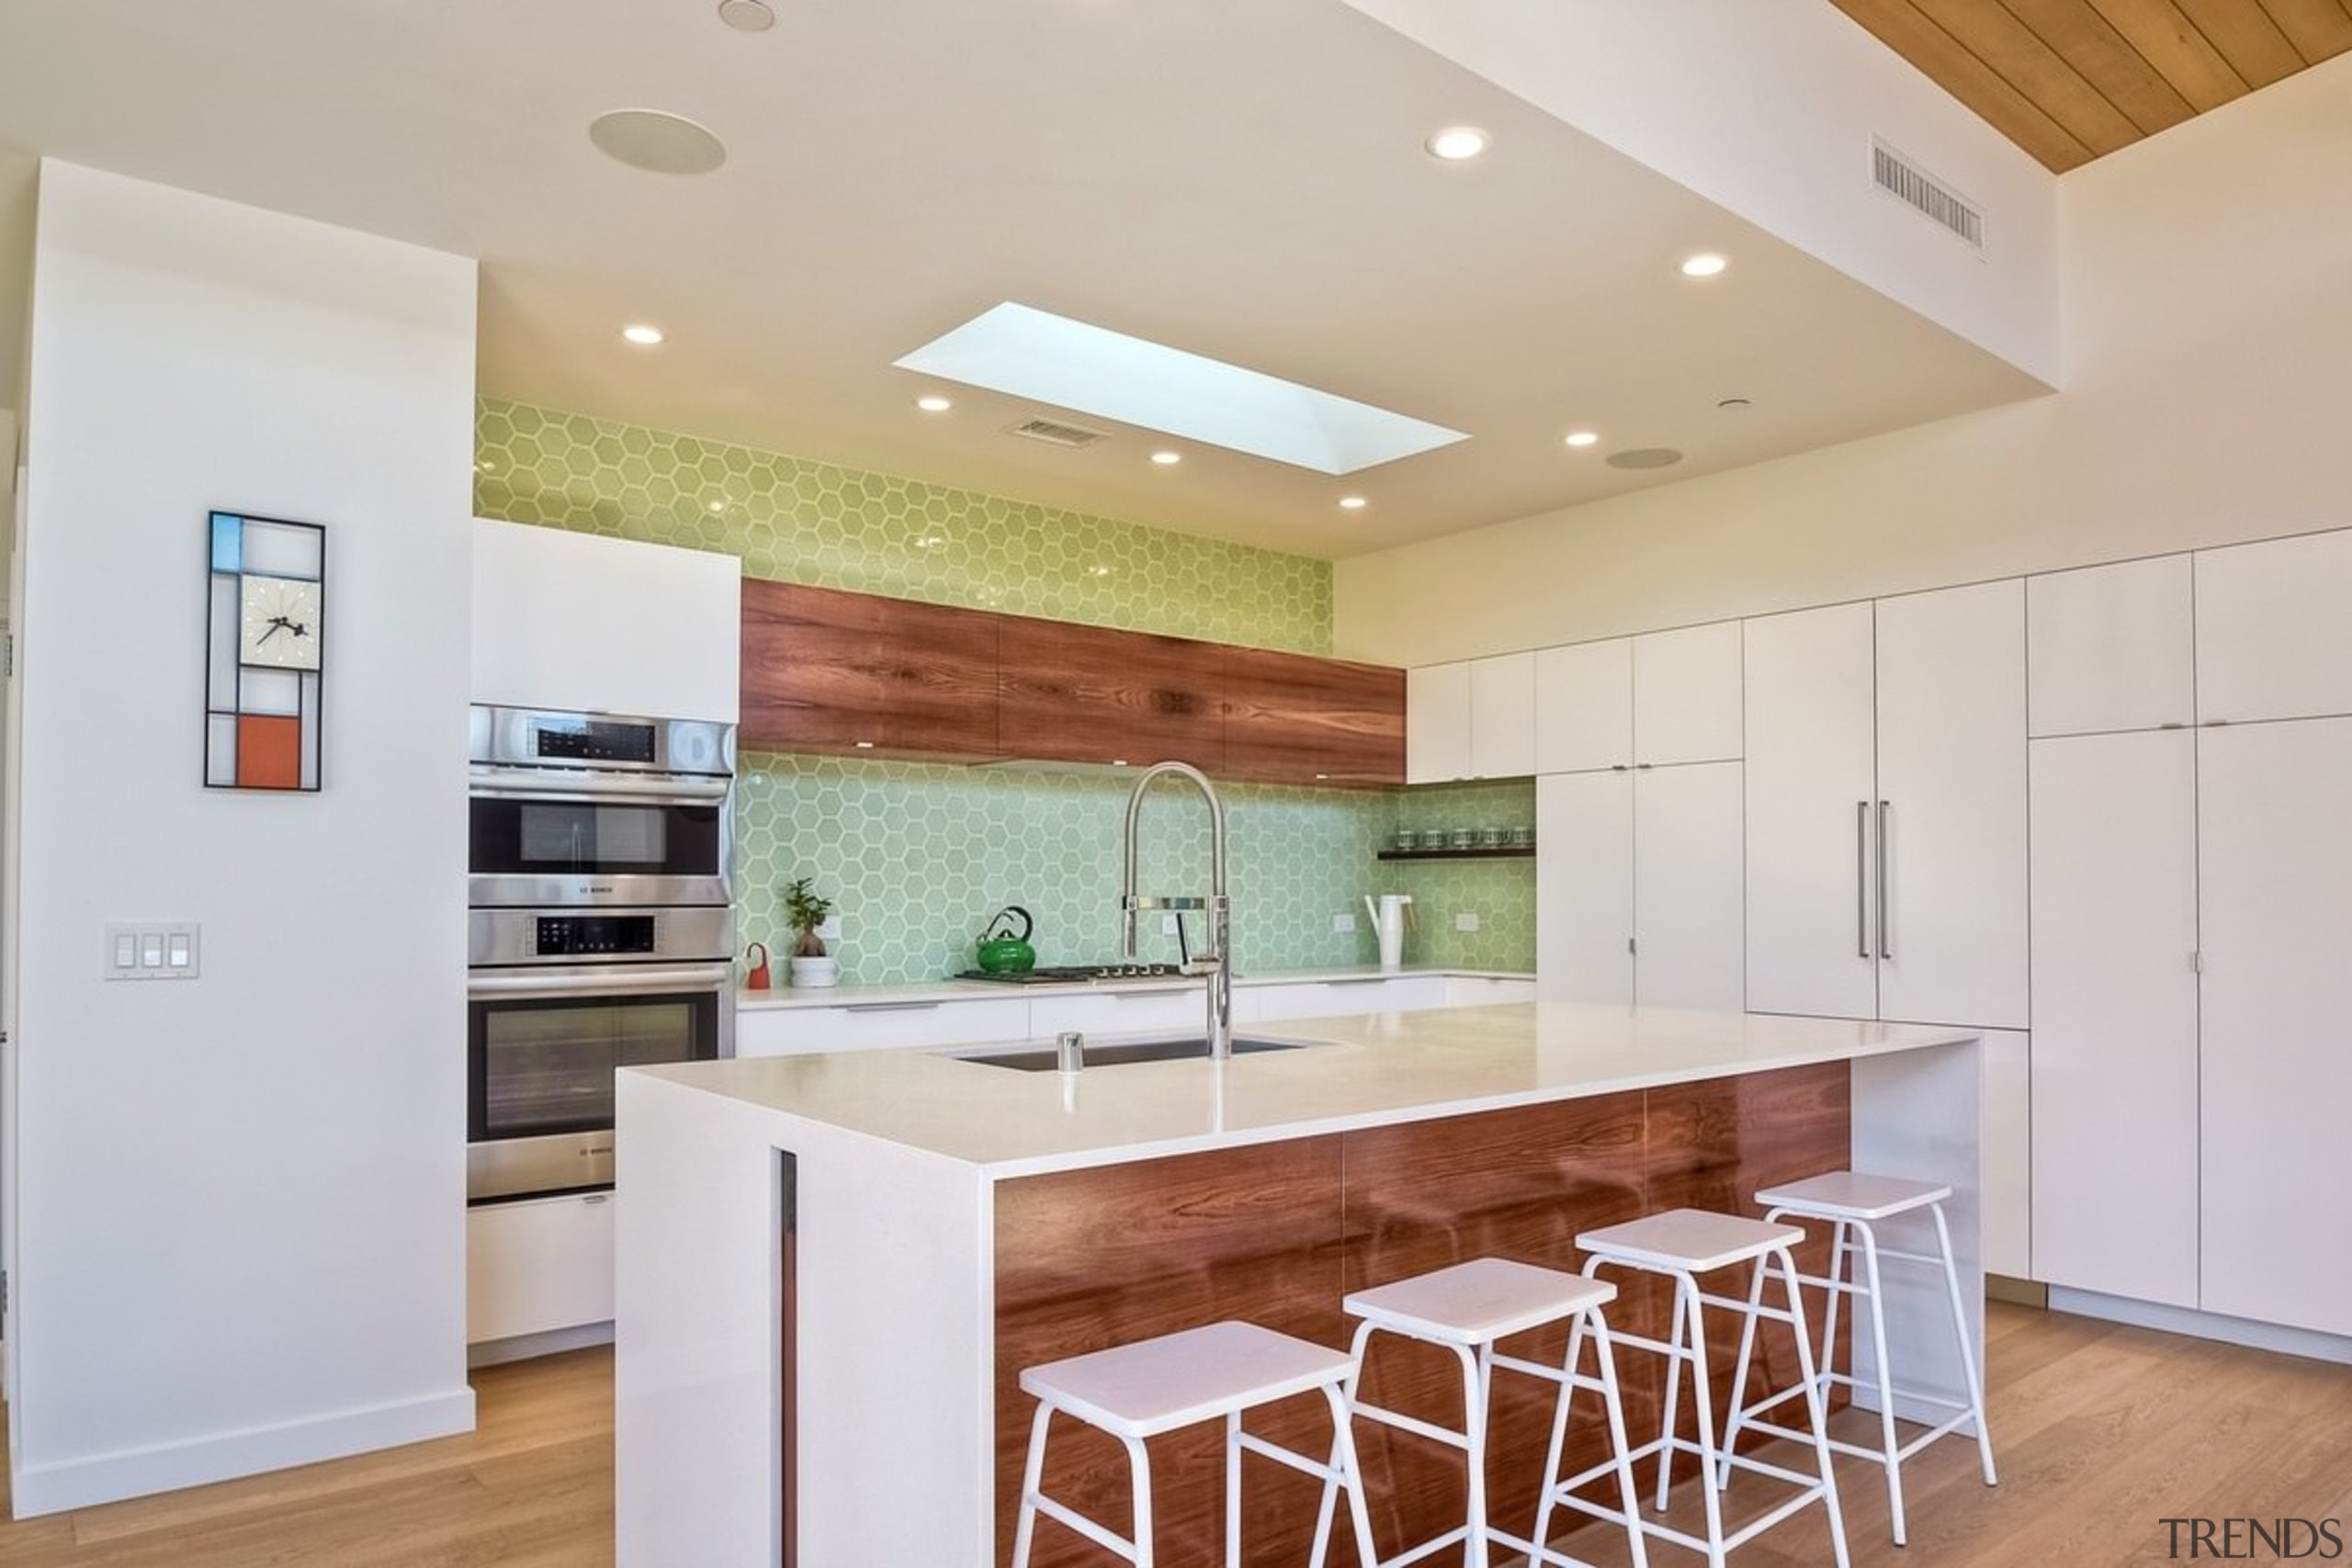 Architect: lloyd russell, aiaPhotography by Darren Bradley cabinetry, ceiling, countertop, floor, hardwood, home, interior design, kitchen, real estate, room, wood flooring, gray